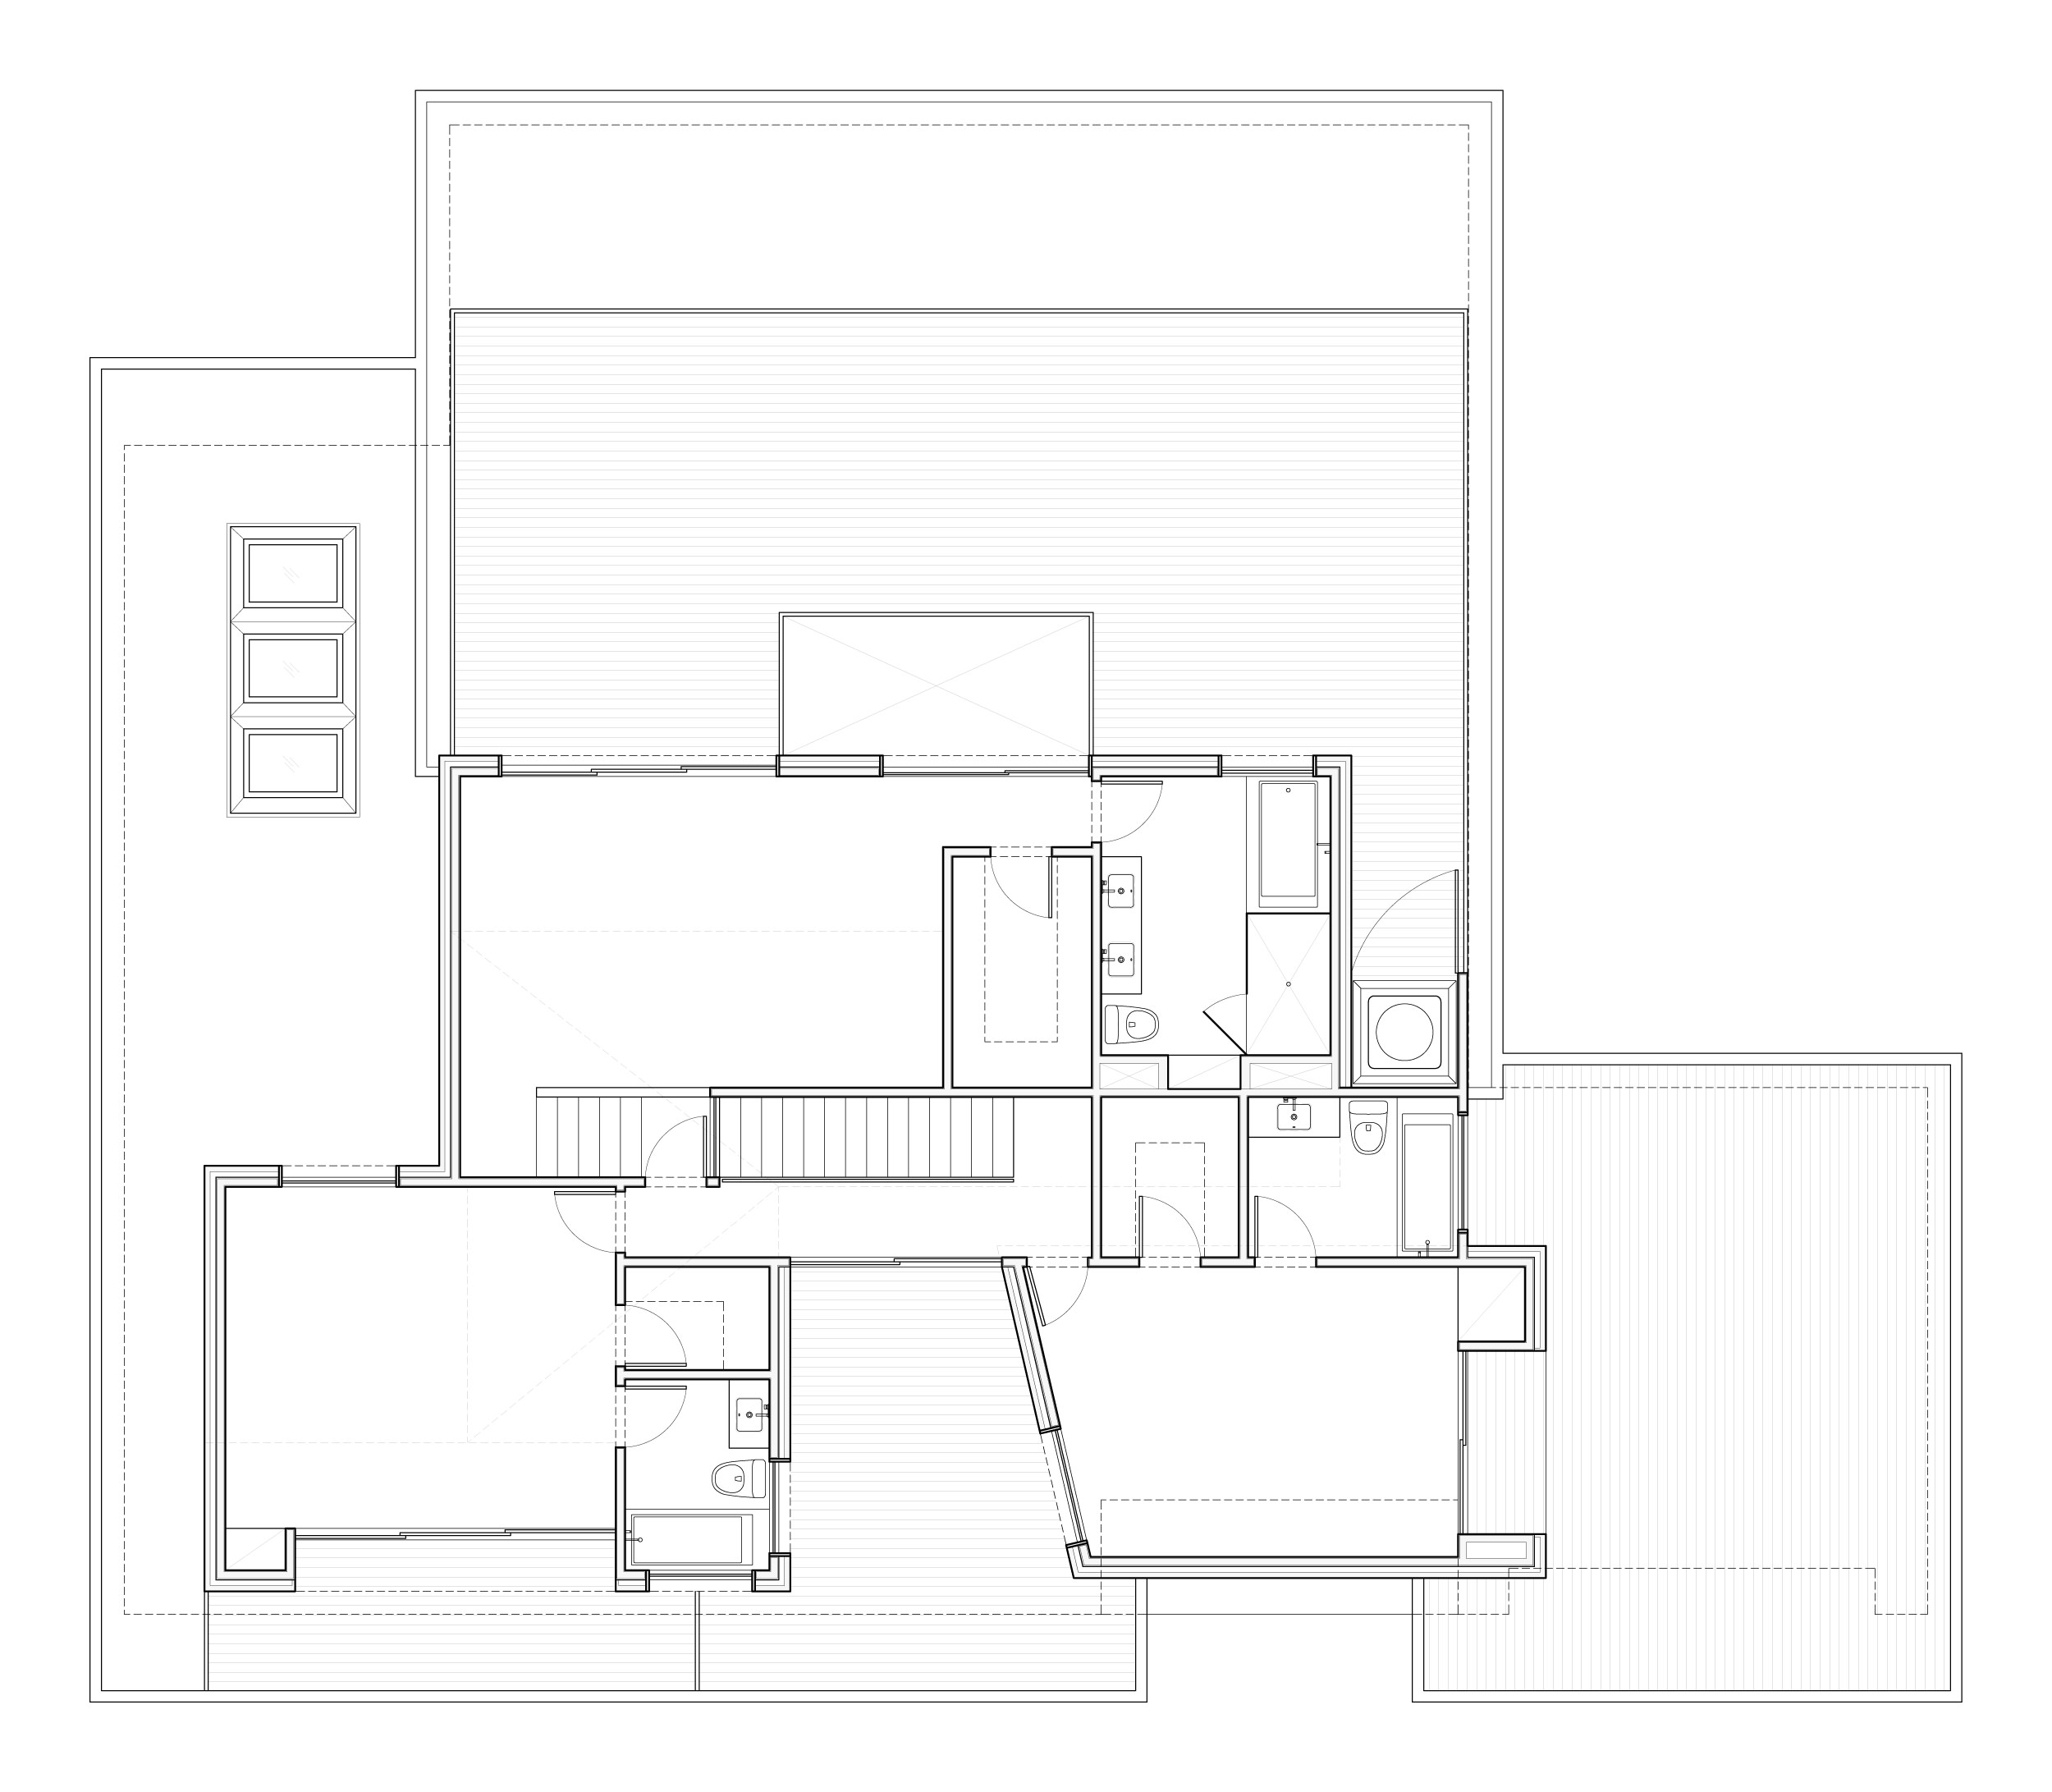 Second-floor plan showing the three bedroom suites- each with a private deck and large doors that open to the view.